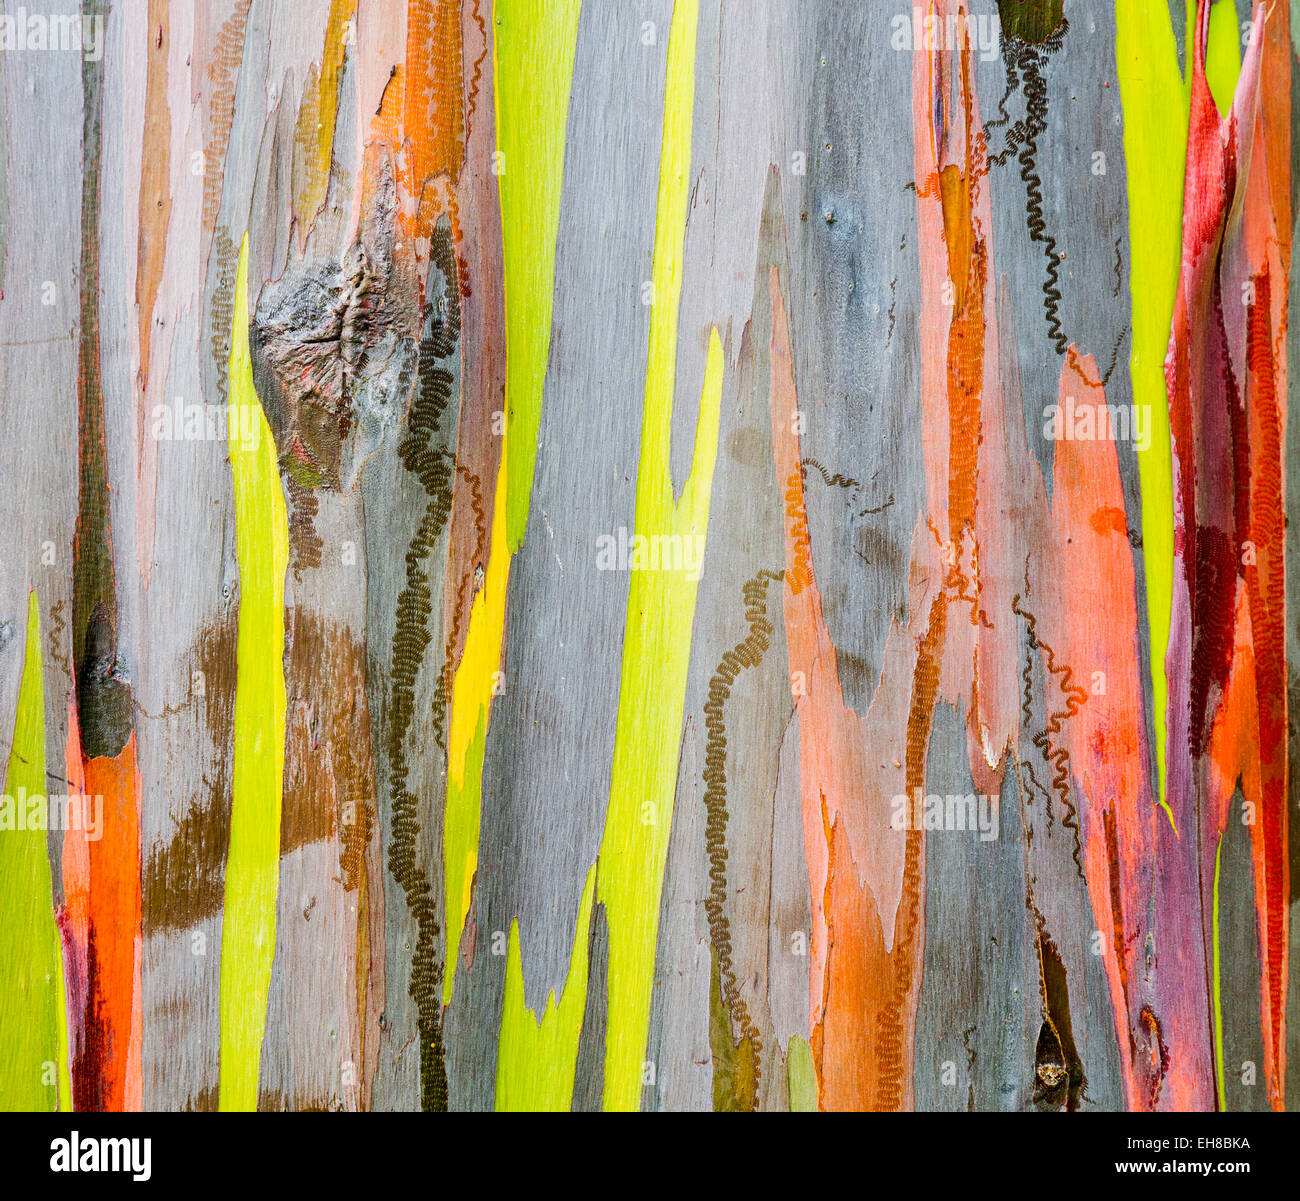 Wood texture - Colourful bark and tree trunk of the Rainbow Eucalyptus tree at Keahua Arboretum in Kauai, Hawaii, Stock Photo